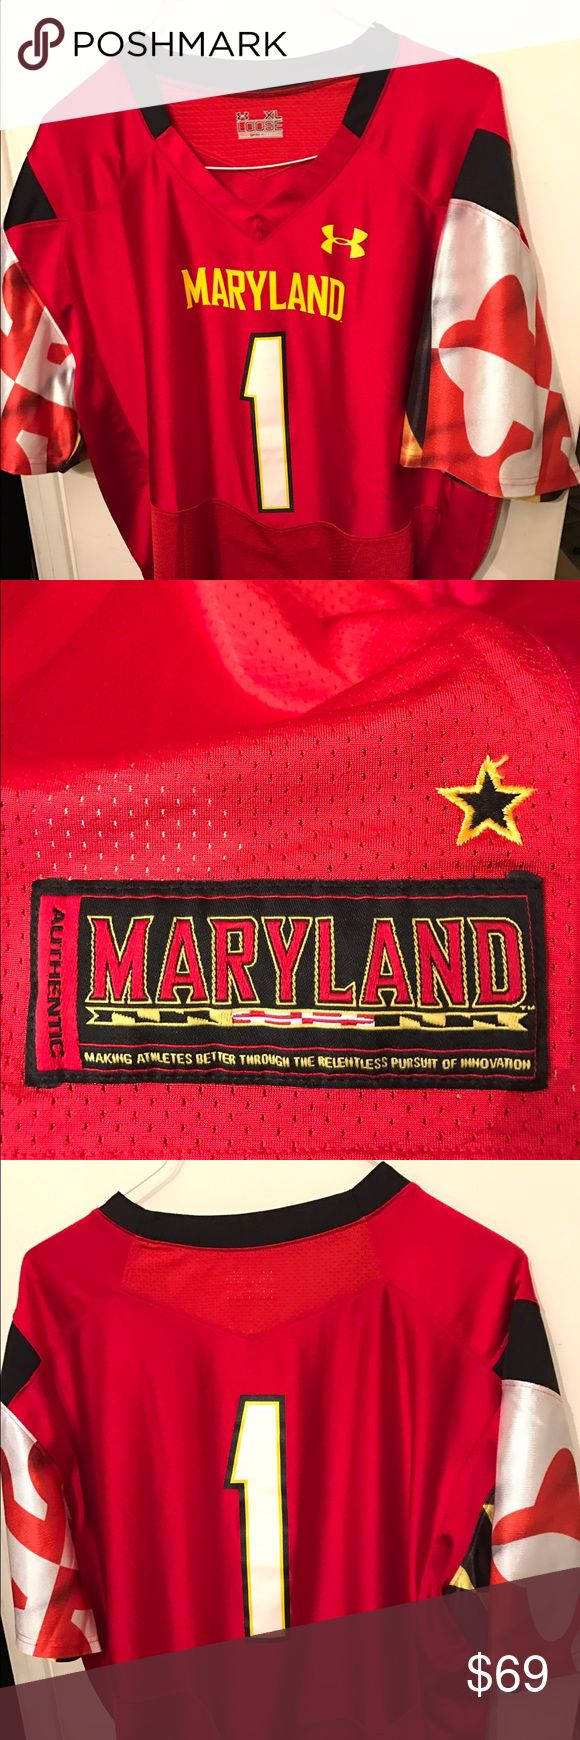 Maryland Under Armour jersey in excellent cond Flawless under armor Maryland University authentic jersey Under Armour Other